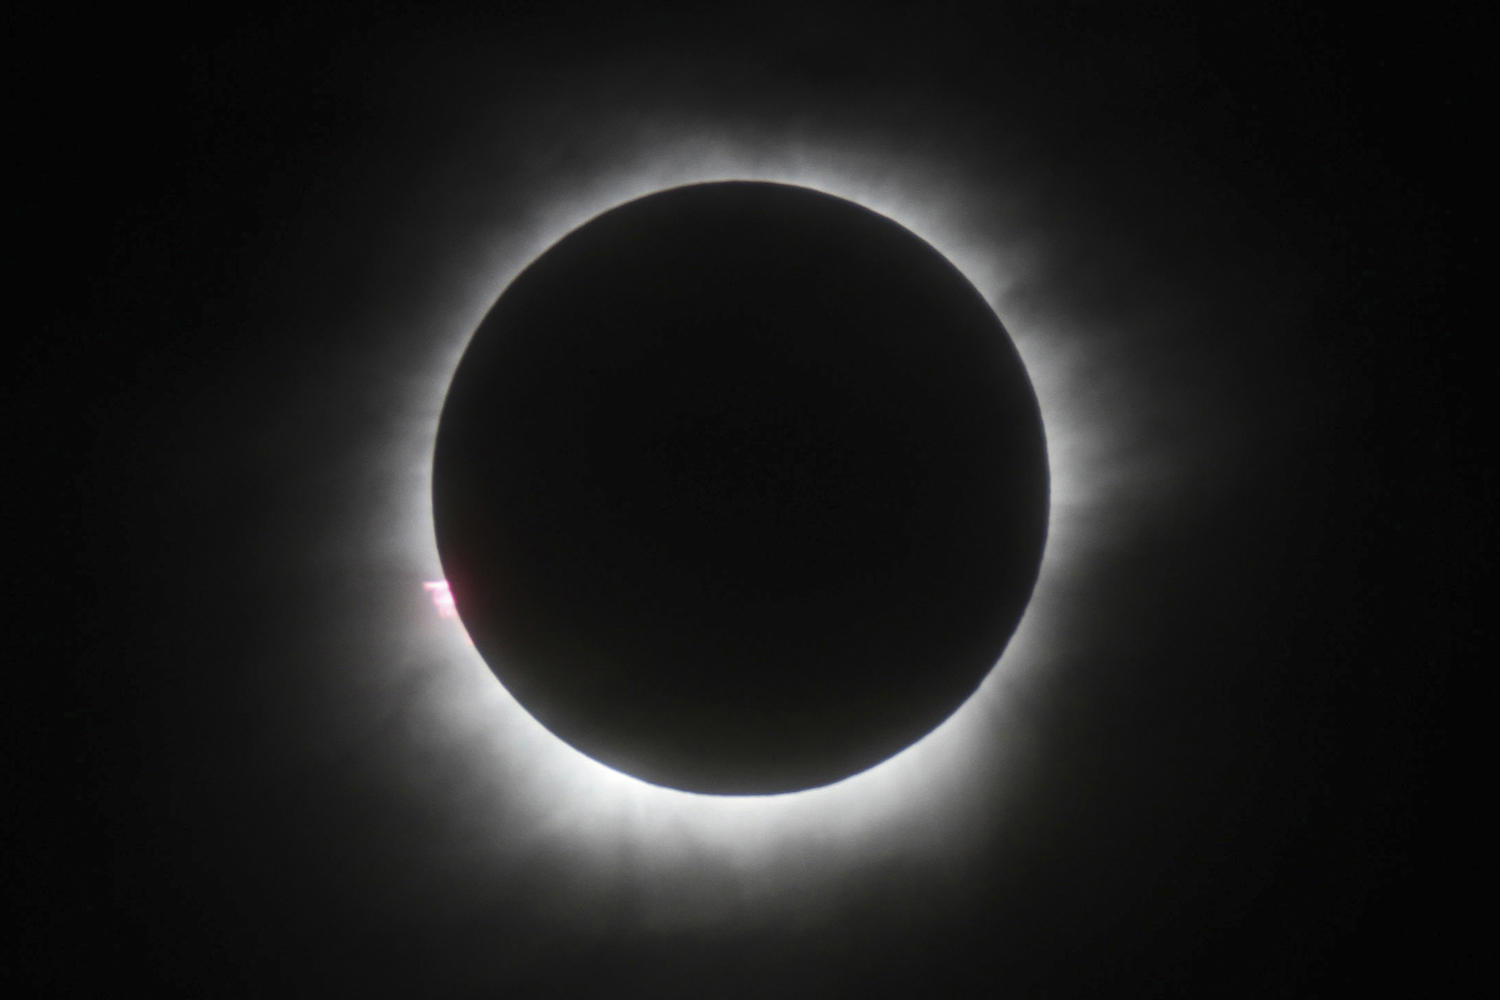 There's more than one way to safely view the upcoming solar eclipse